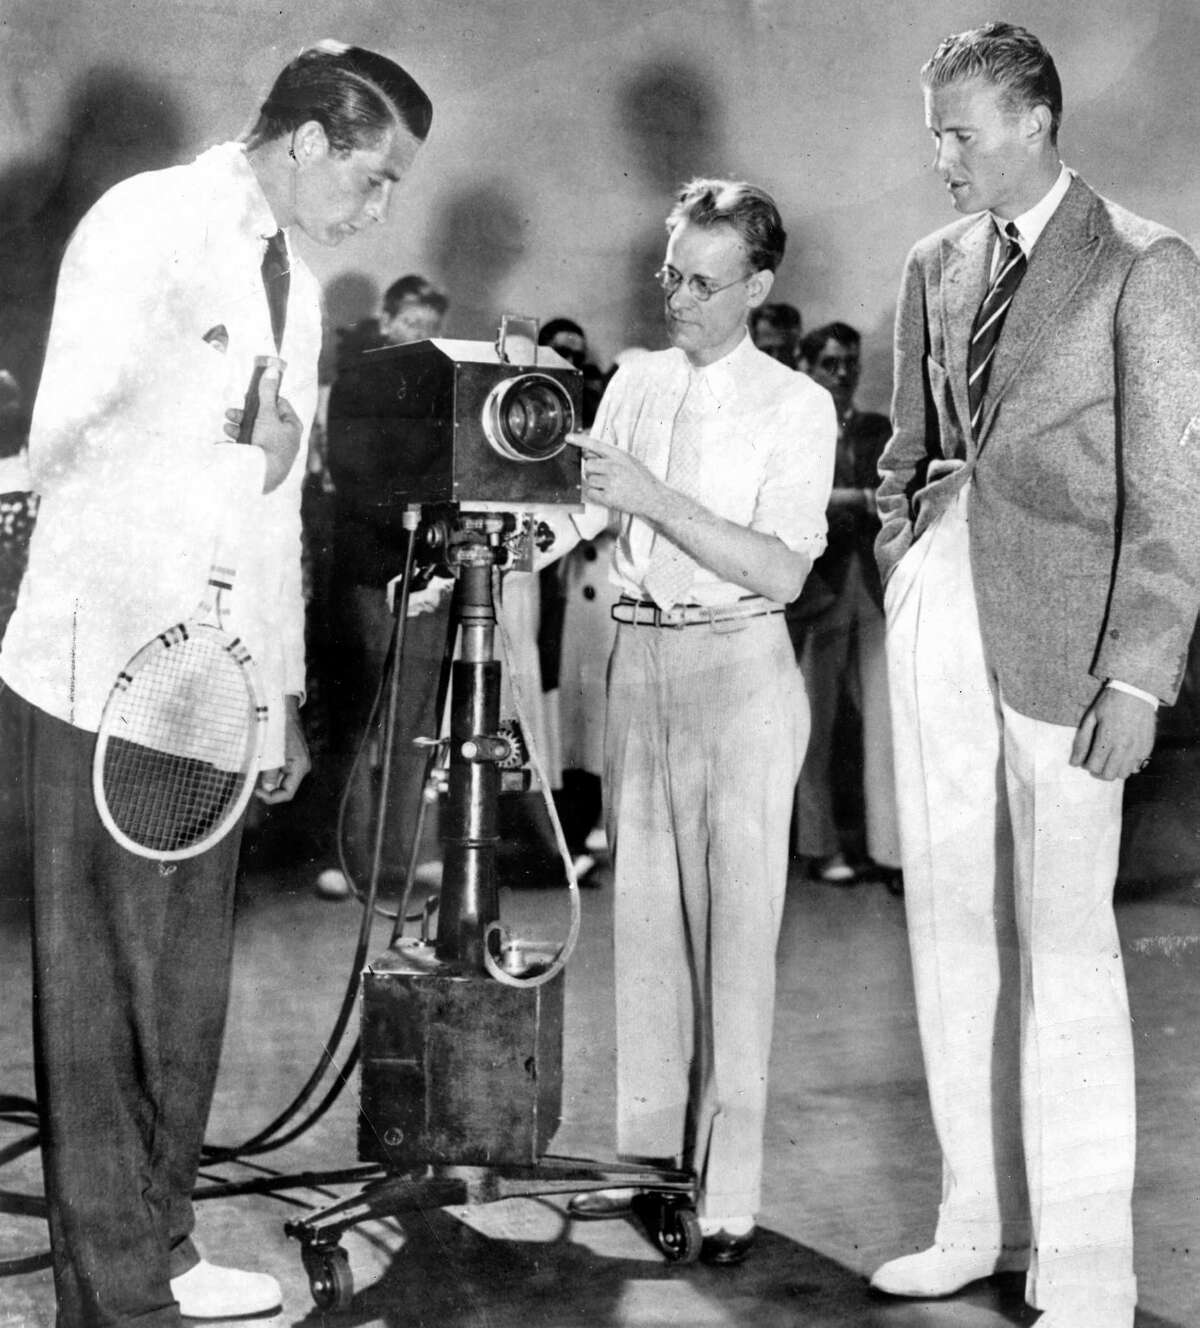 Philo T. Farnsworth who invented the tube leading to television, demonstrates his device to two Davis Cup members Frank Shields (left) and Lester Stoffen (right).